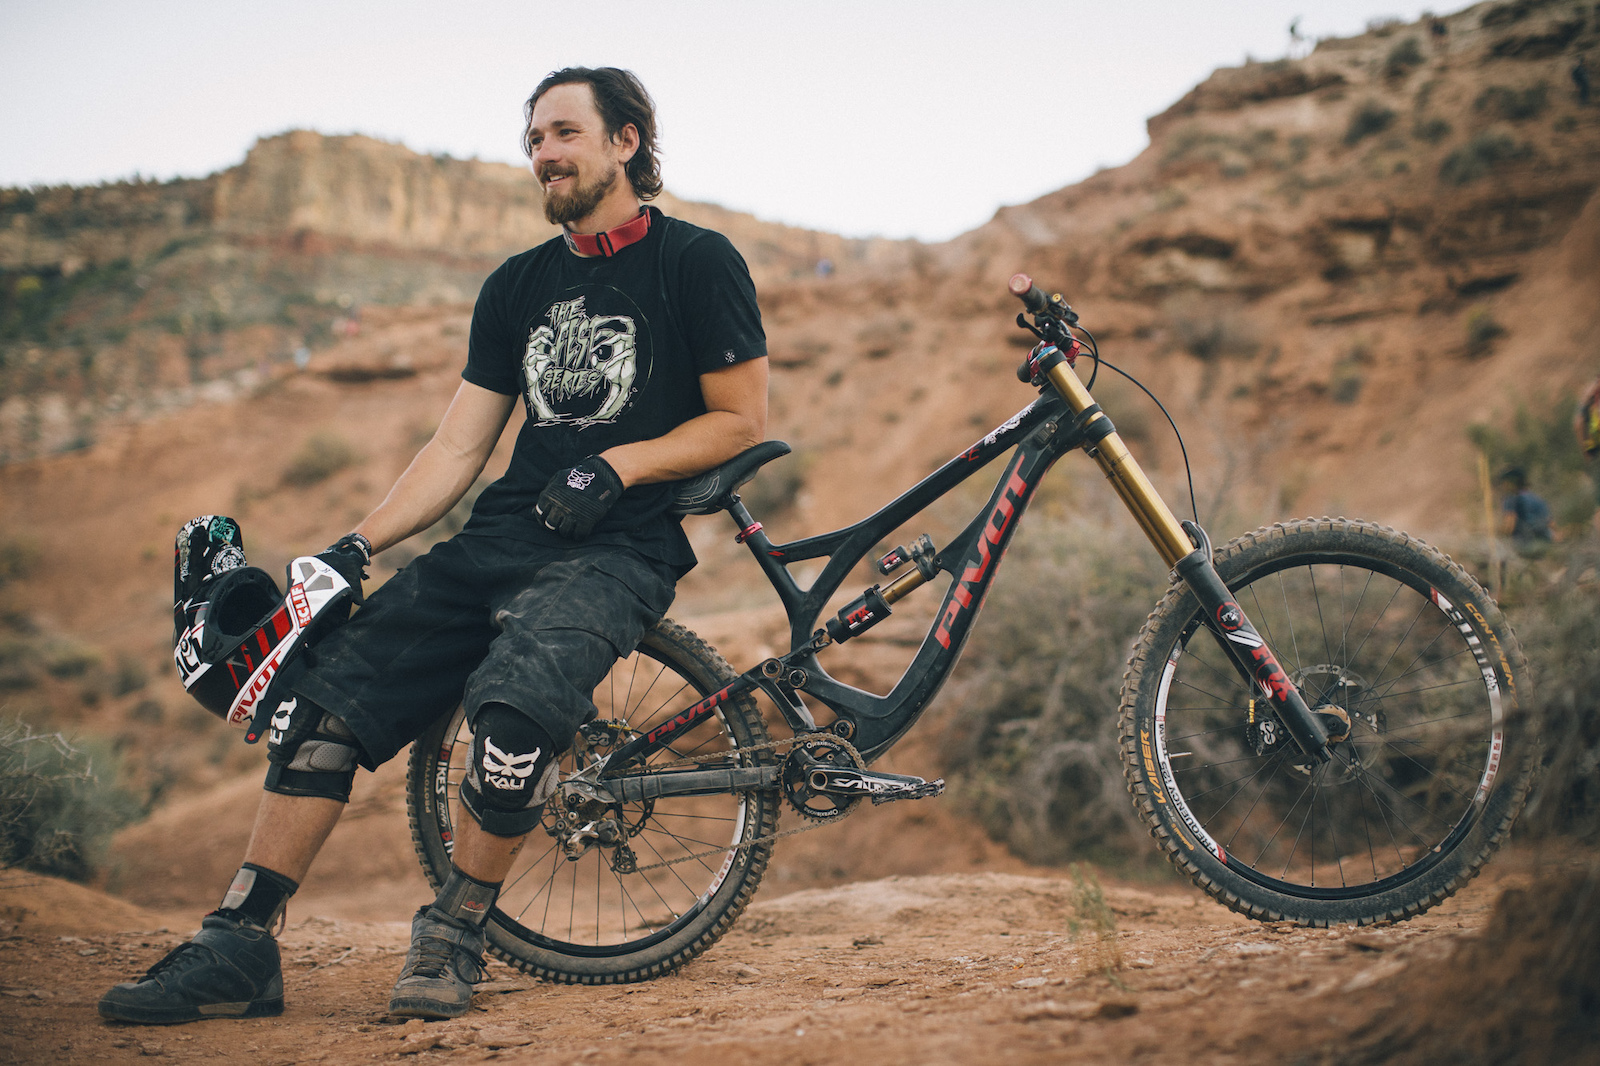 Jeff Herbertson at RedBull Rampage 2015 Virgin Utah USA